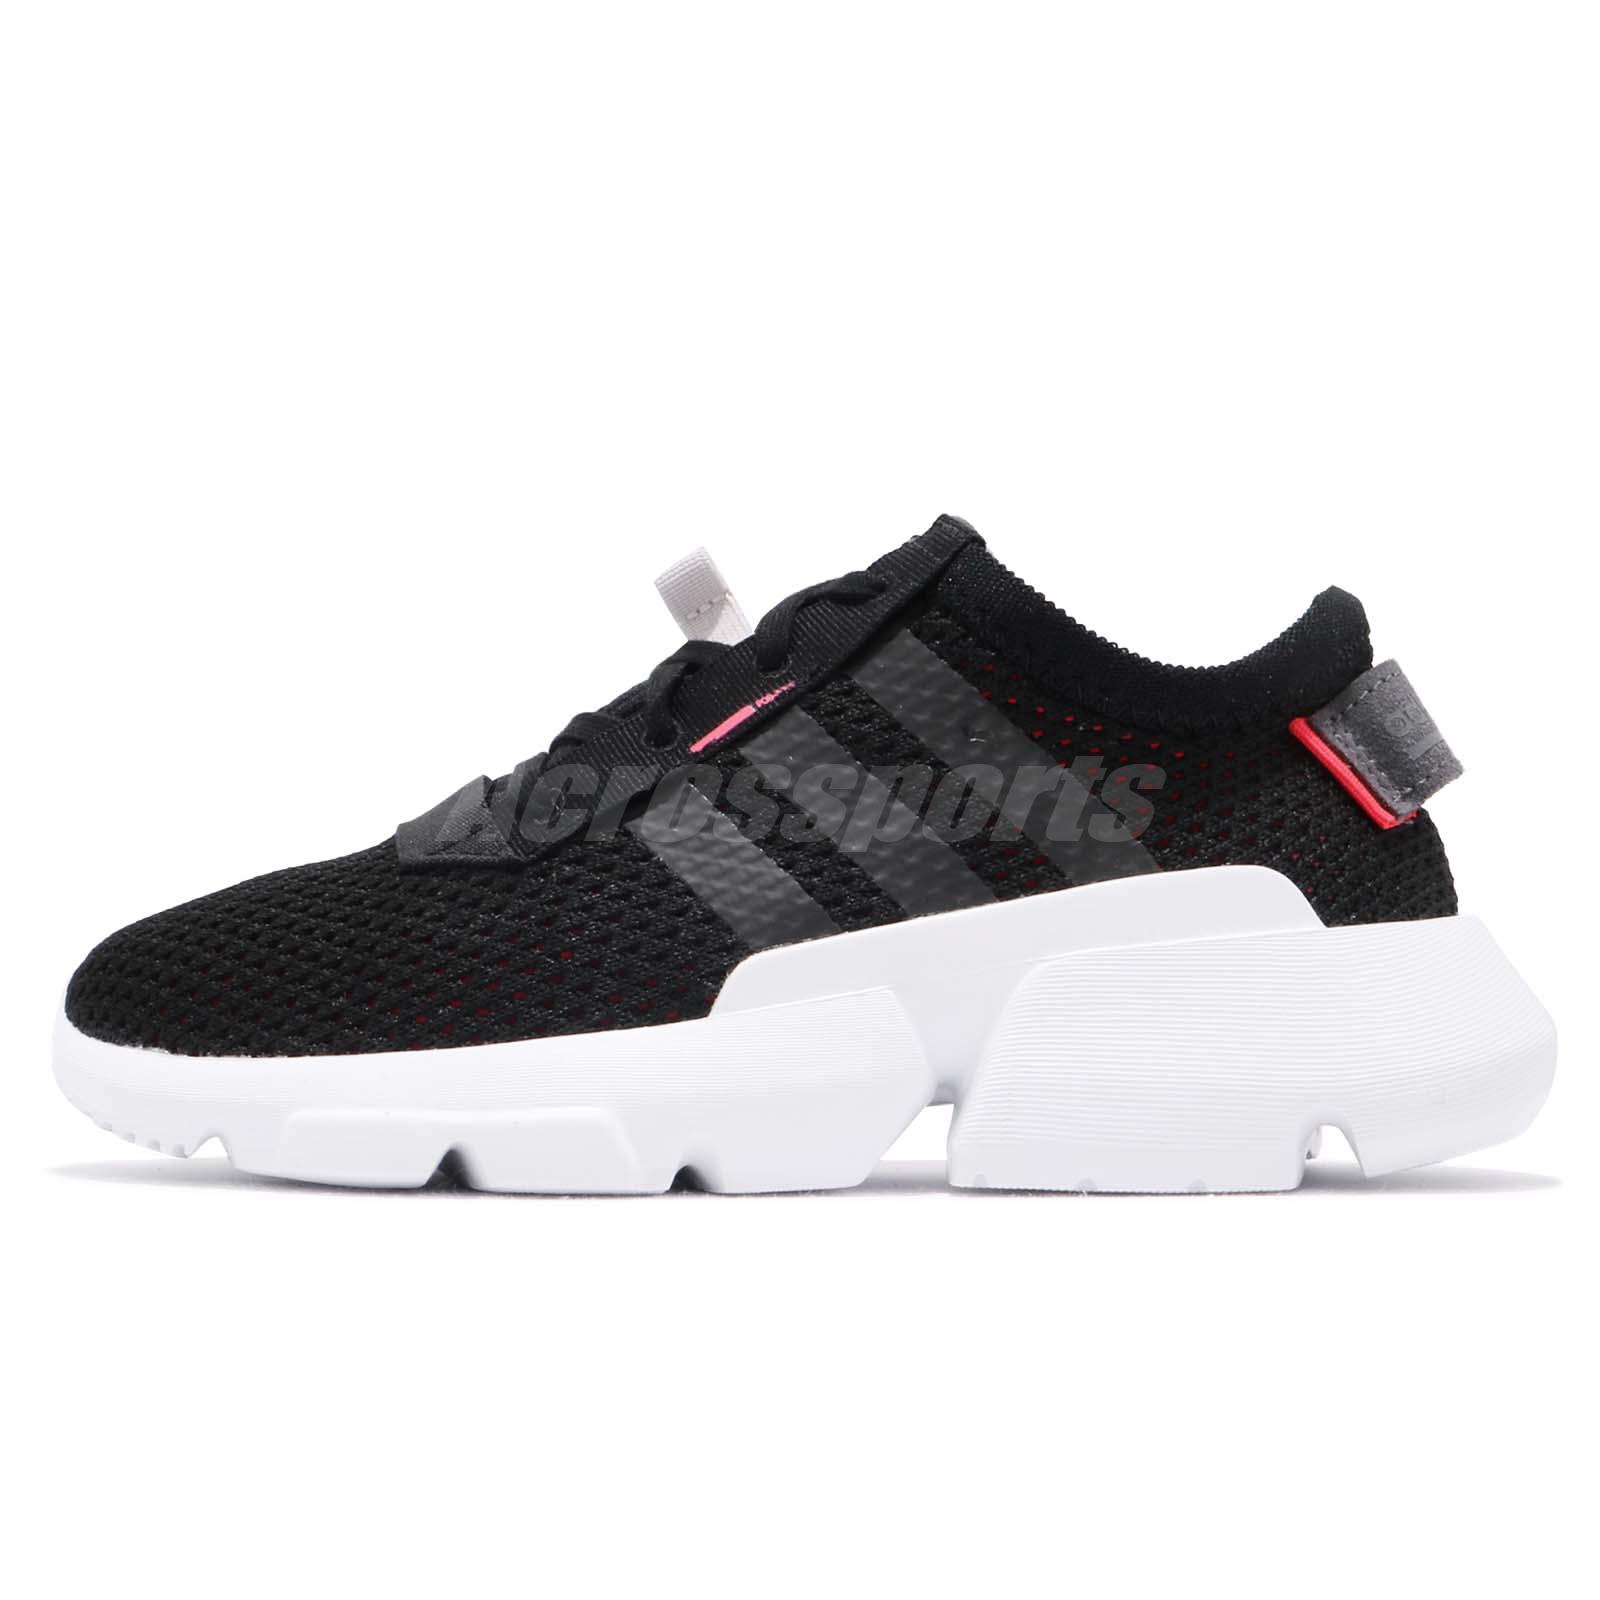 4fd34c06dcab9 adidas Originals Pod-S3.1 C Black Red White Kid Preschool Shoes Sneakers  DB2878